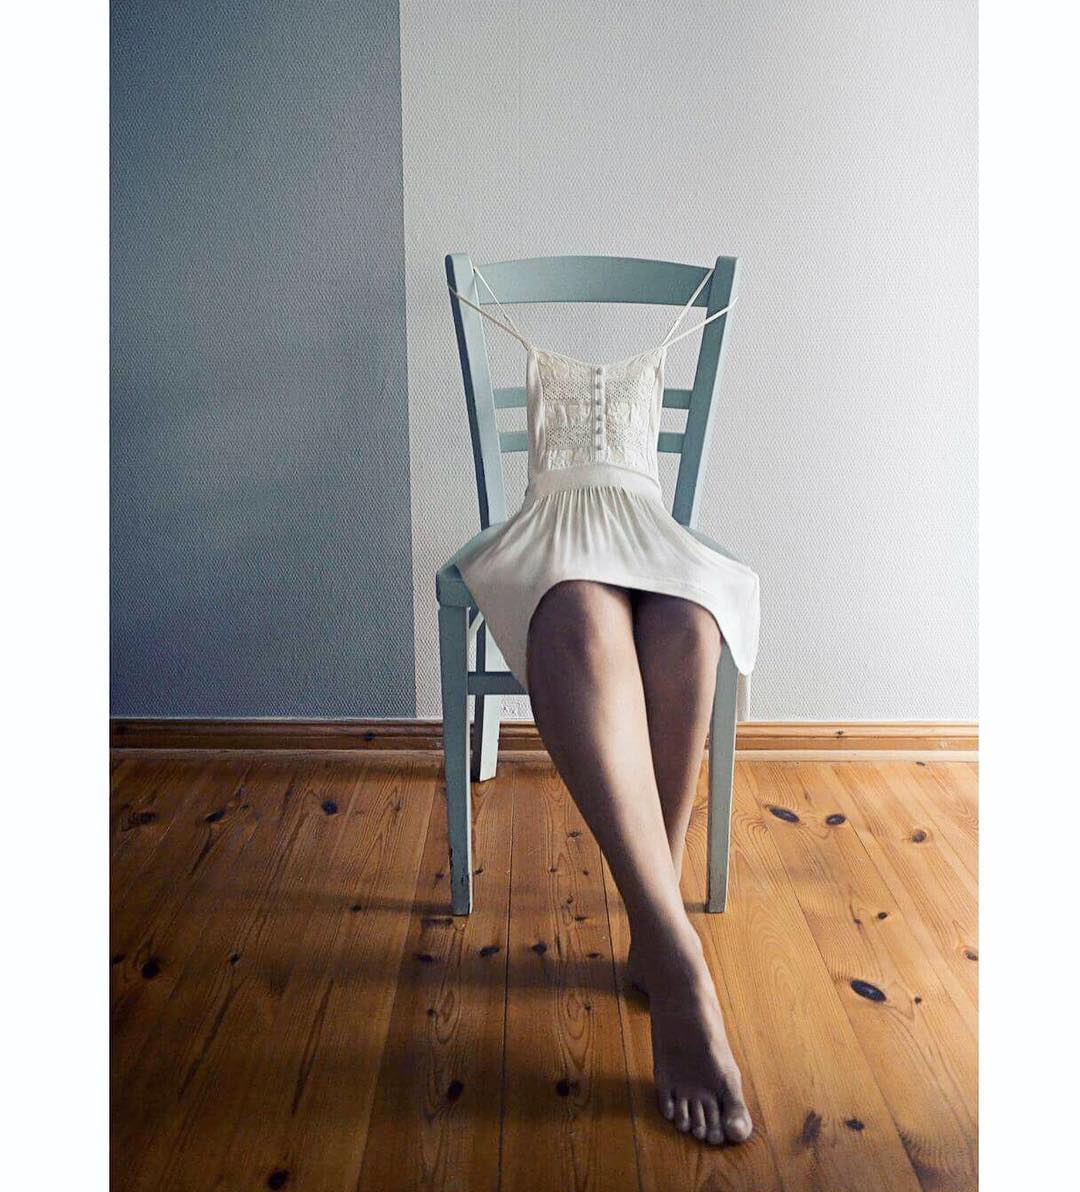 chair photo manipulation by monica carvalho